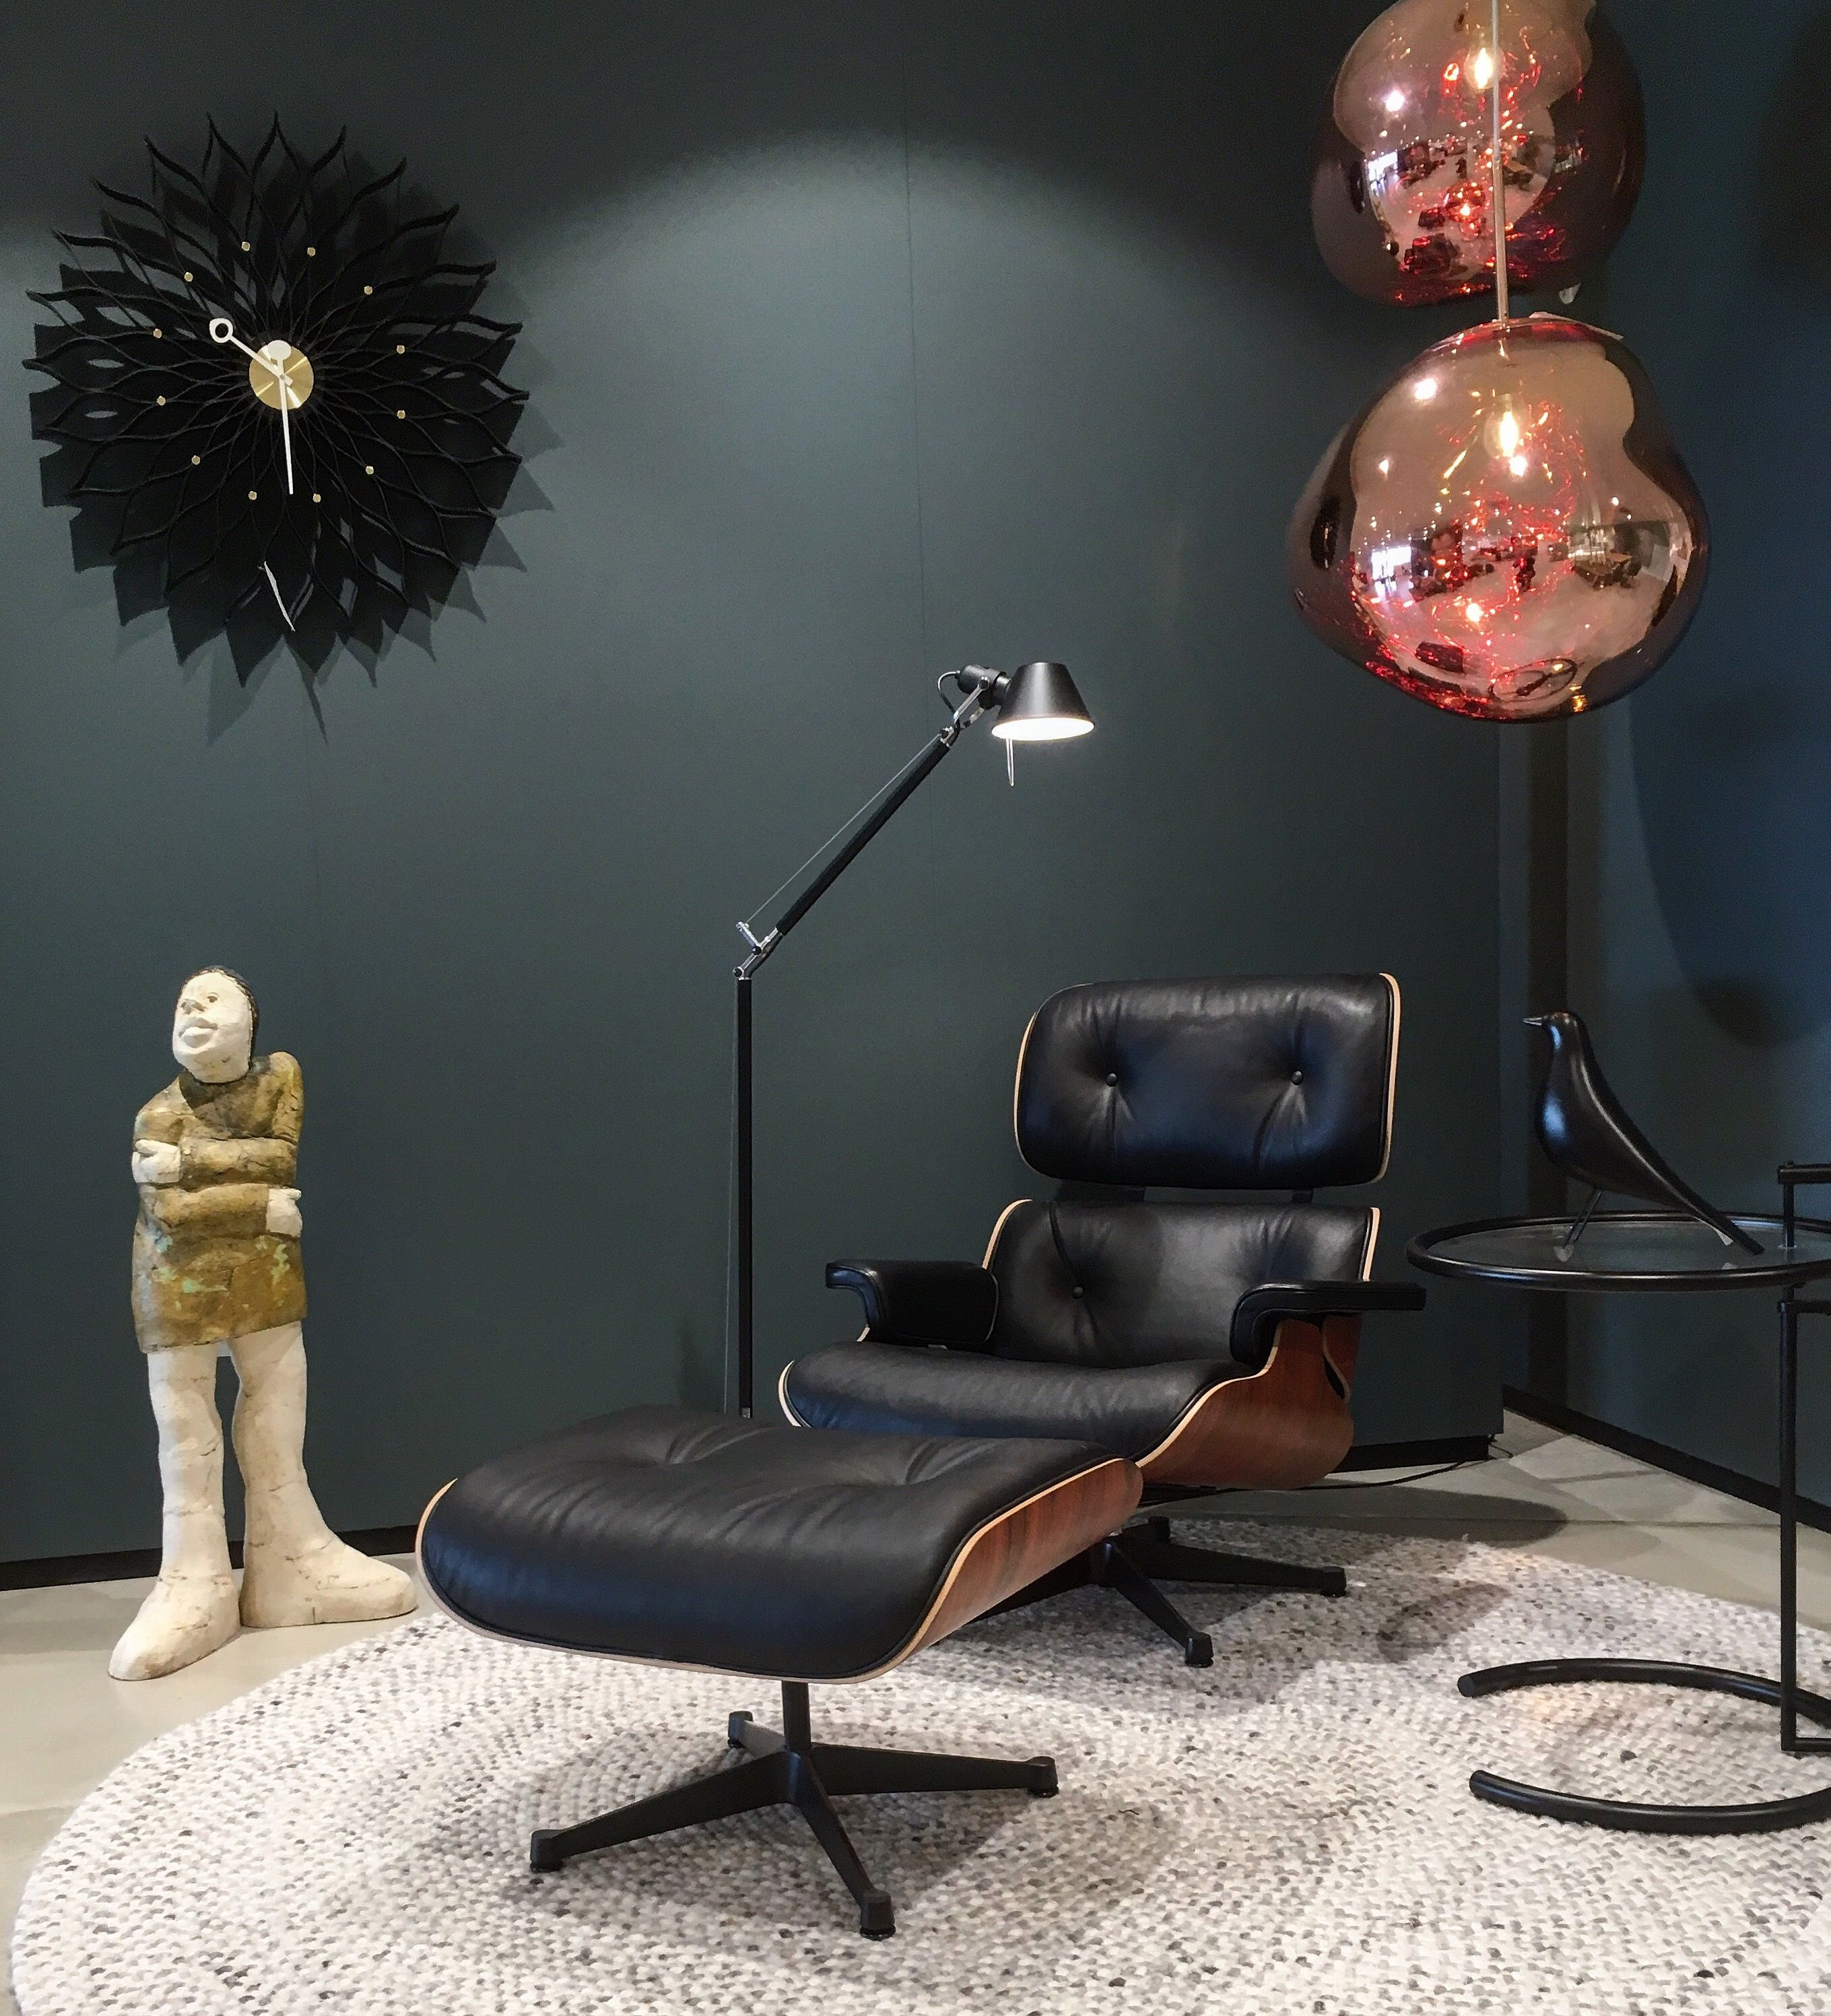 Eames Lounge Chair Charles & Ray Eames 1956 in bination with